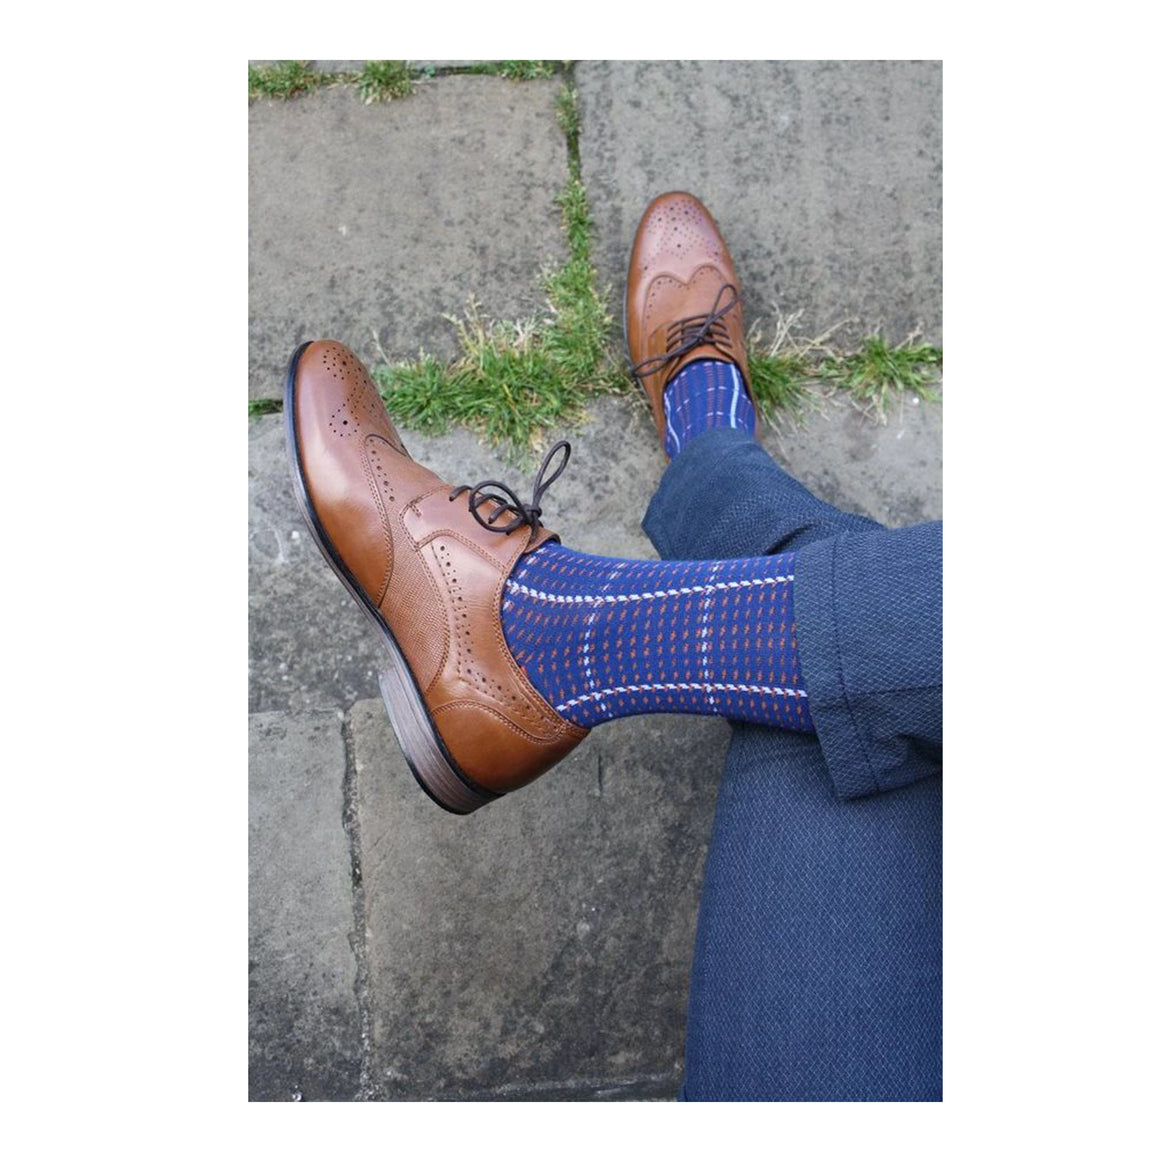 Check Bamboo Socks for Men in Orange & Blue